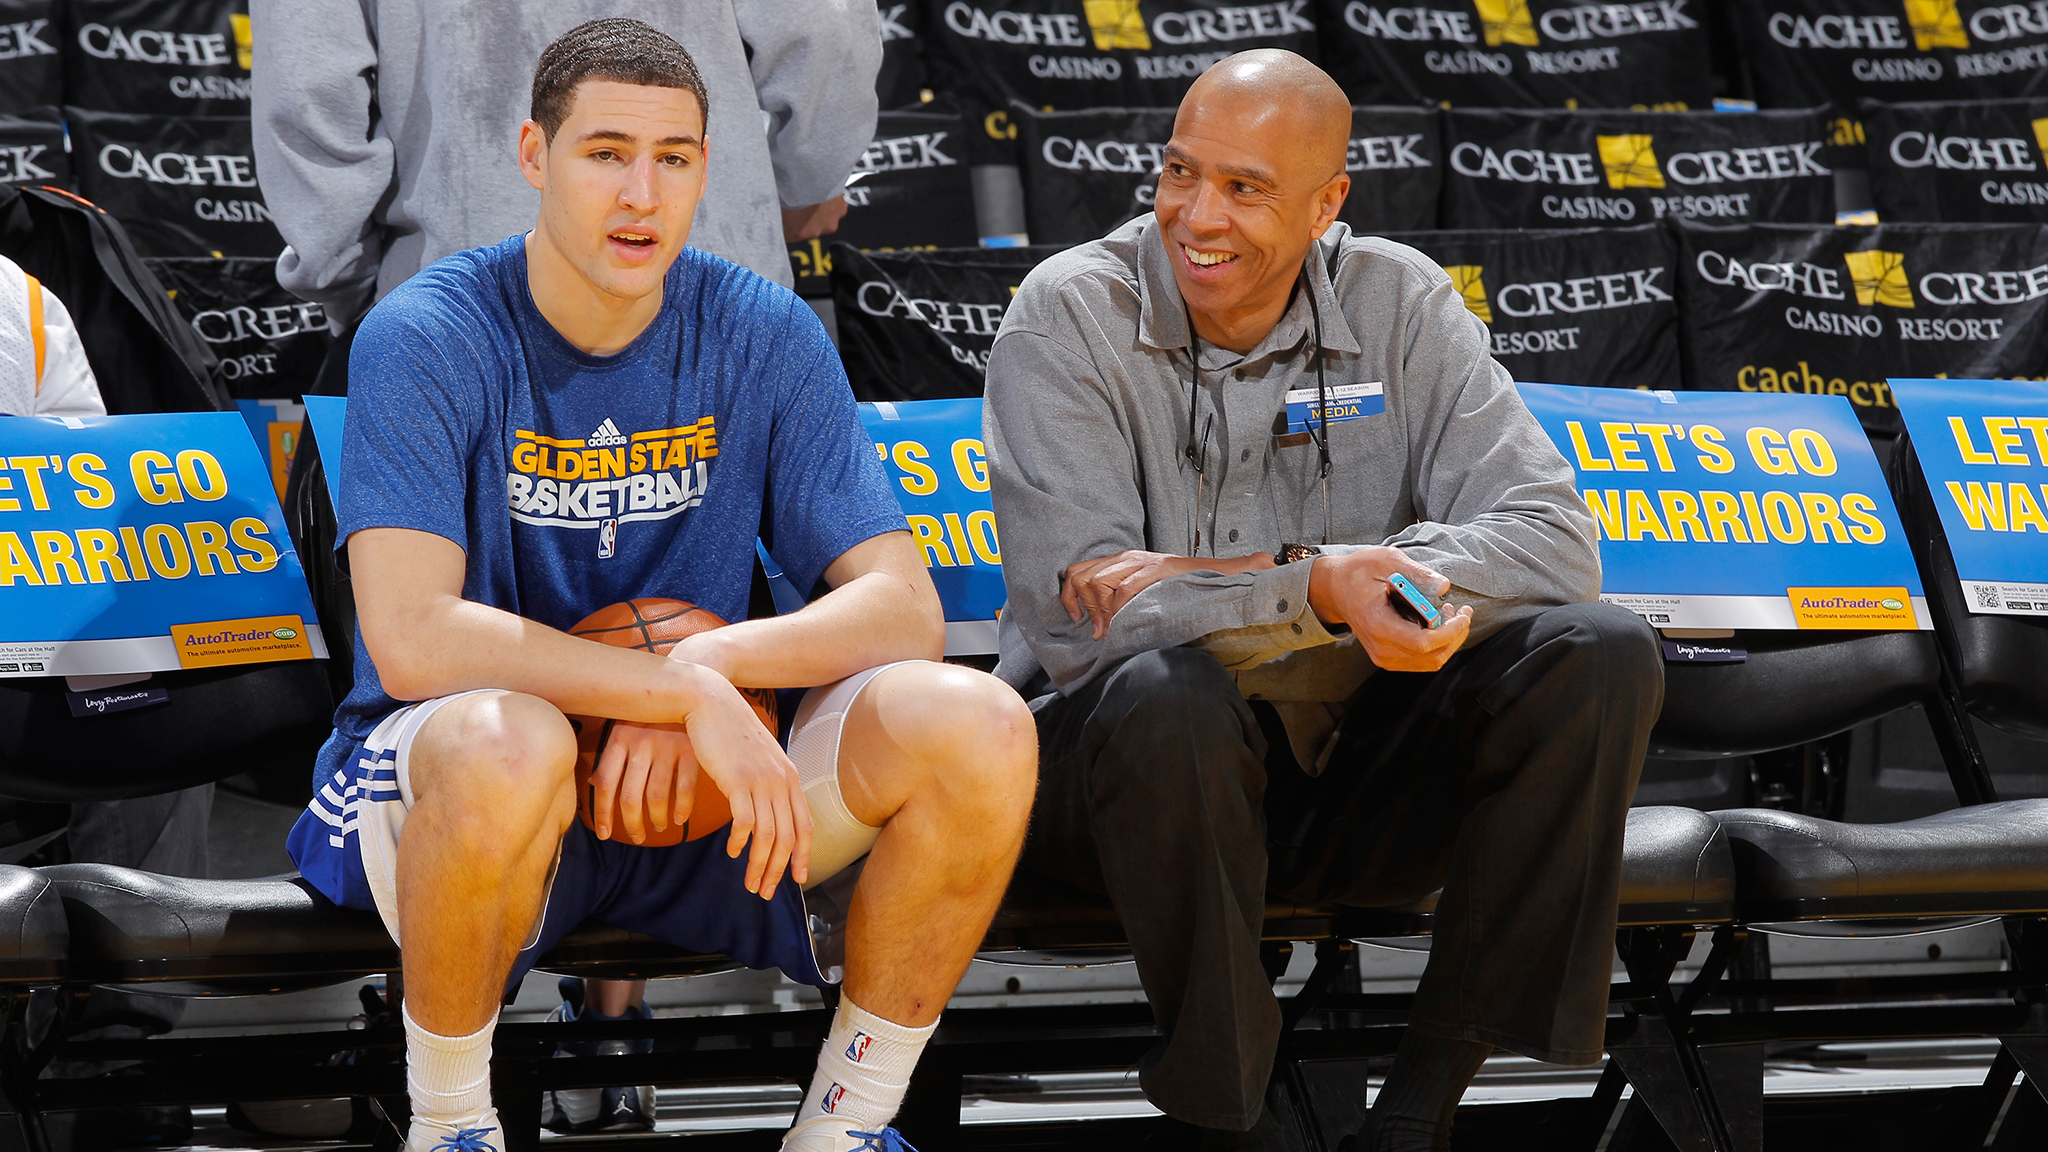 Klay Thompson of the Golden State Warriors talks to his father Mychal Thompson before a game against the Los Angeles Lakers in 2012. Mychal Thompson works as a Lakers commentator for ESPN 710 in Los Angeles and commentates on his son's performance on the court when the Warriors and Lakers play.